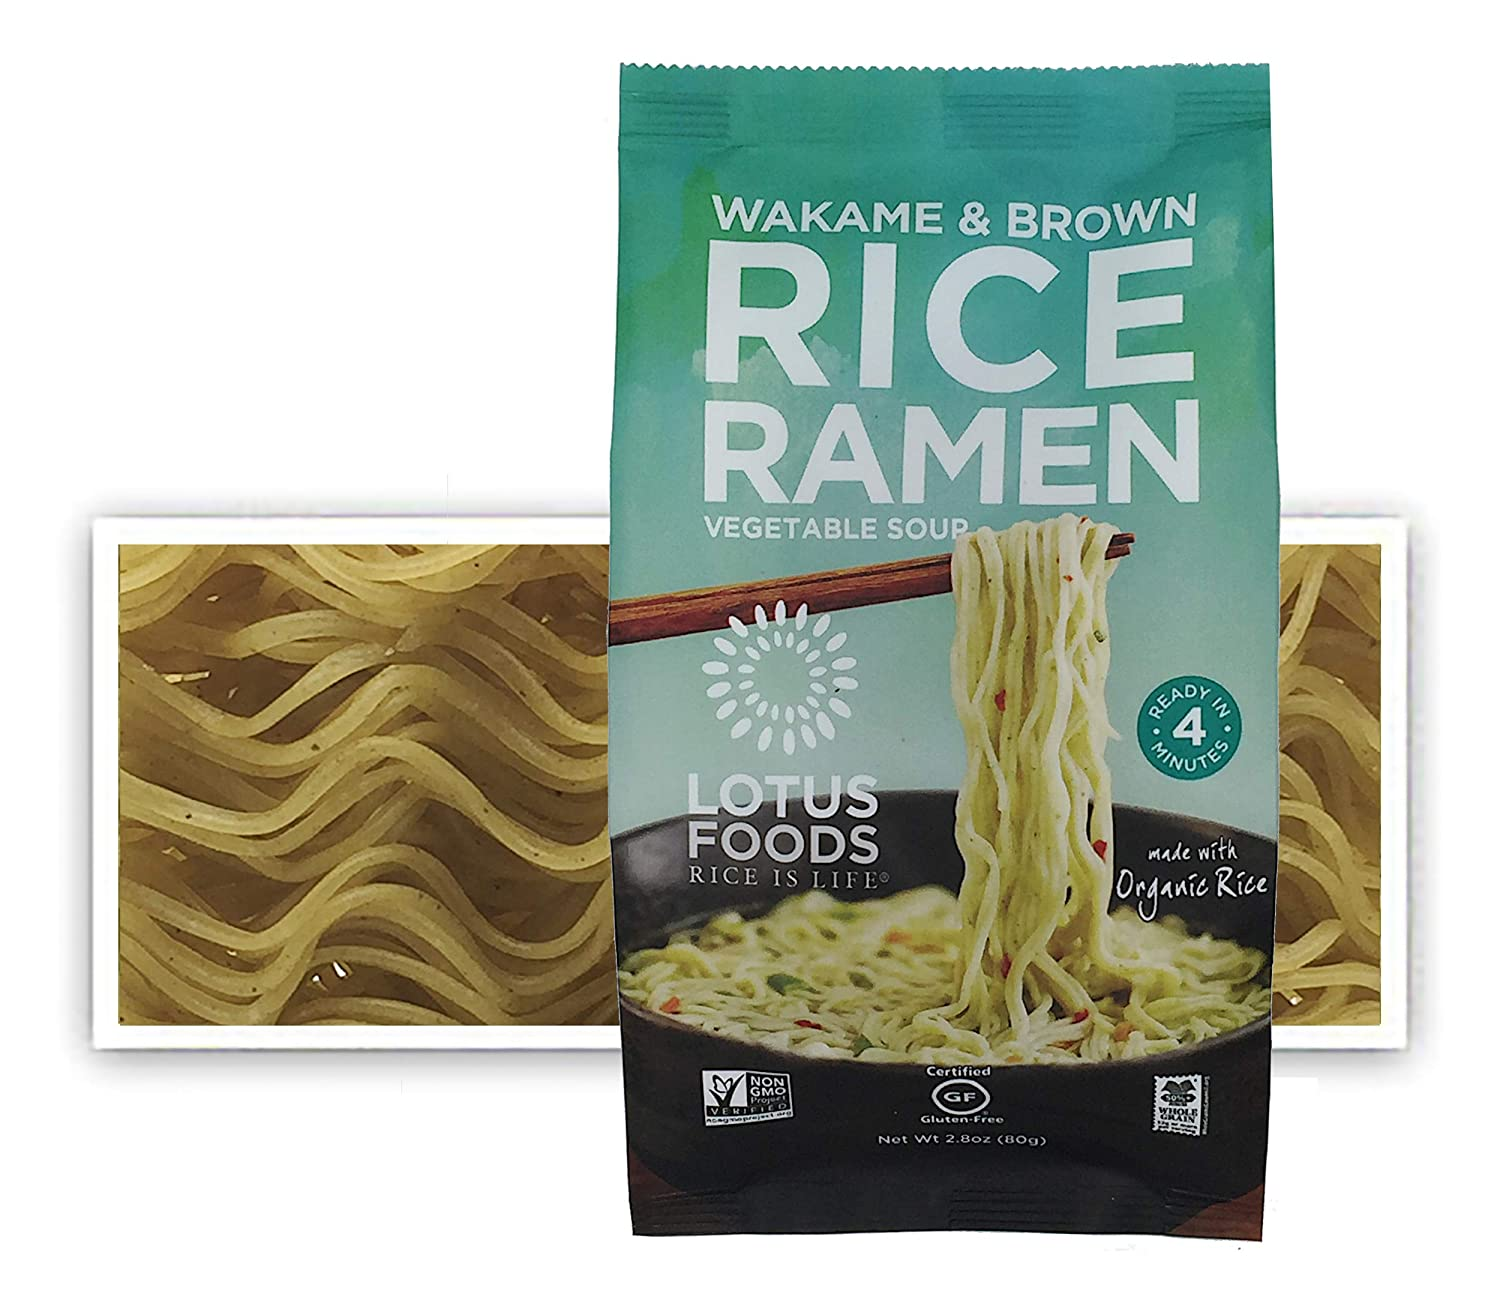 Lotus Foods Wakame & Brown Rice Ramen With Vegetable Soup, Gluten-Free, 10Count